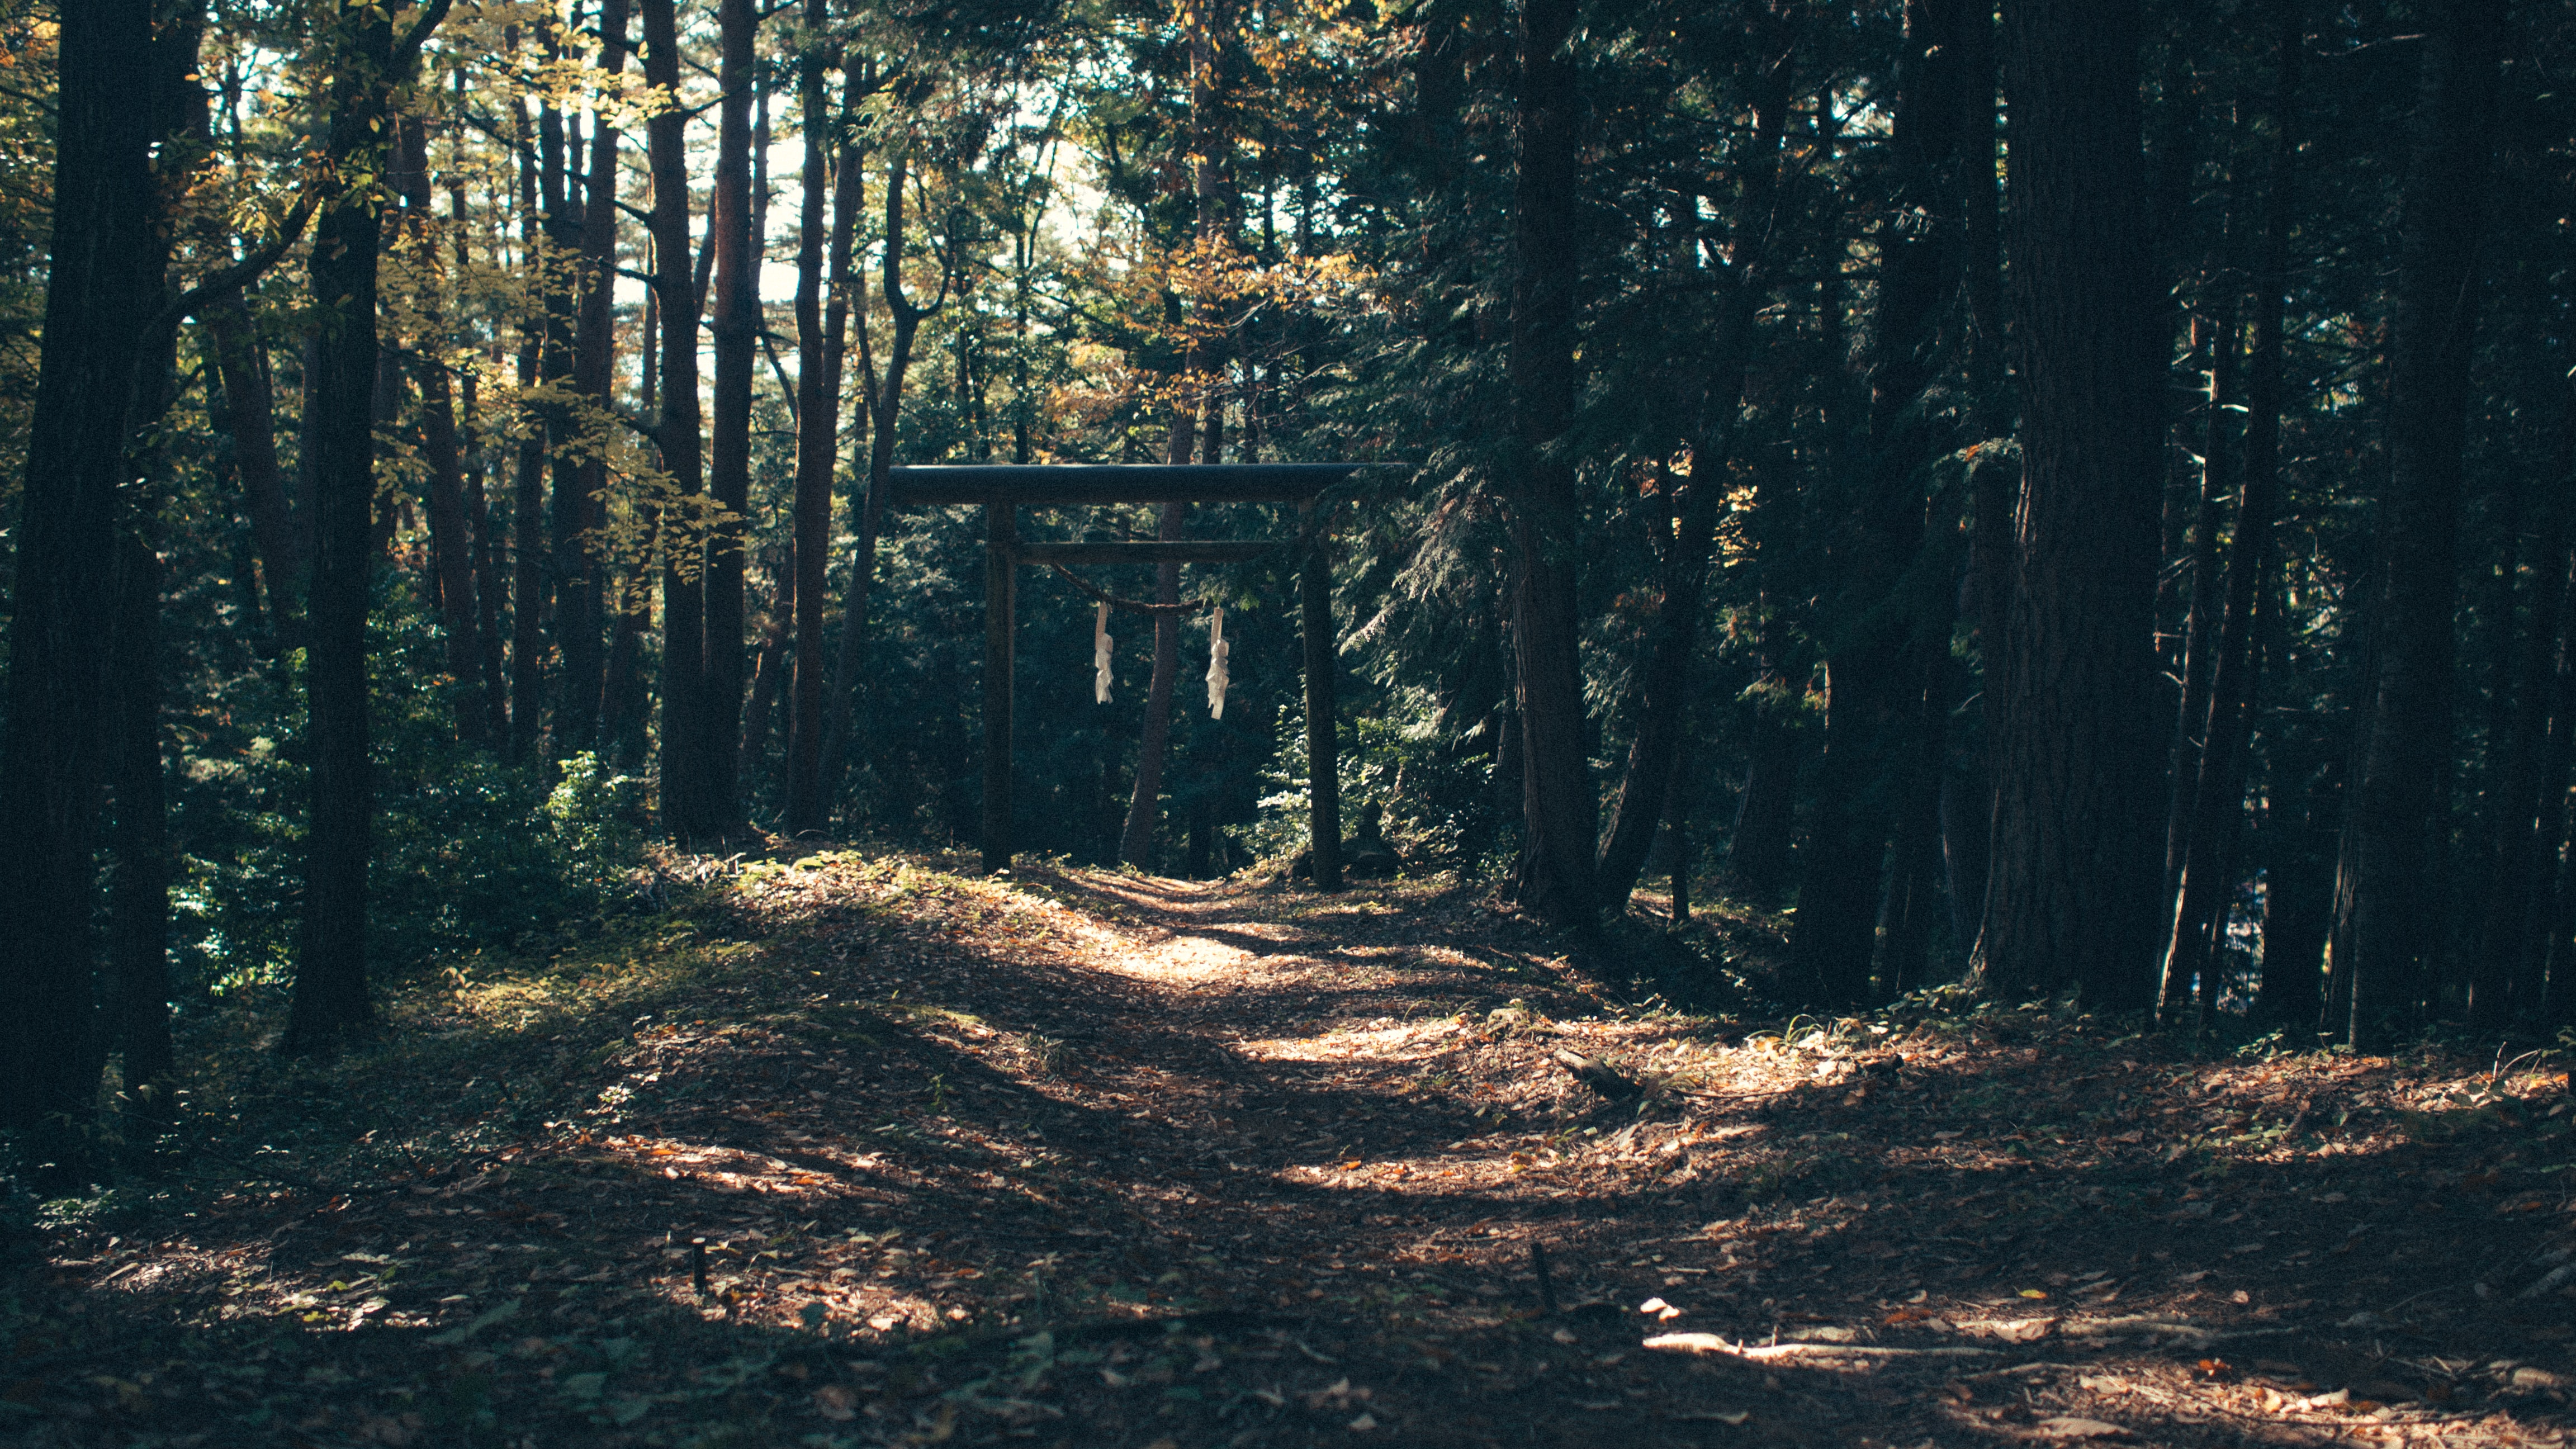 A wooden gateway at the end of a trail in a forest